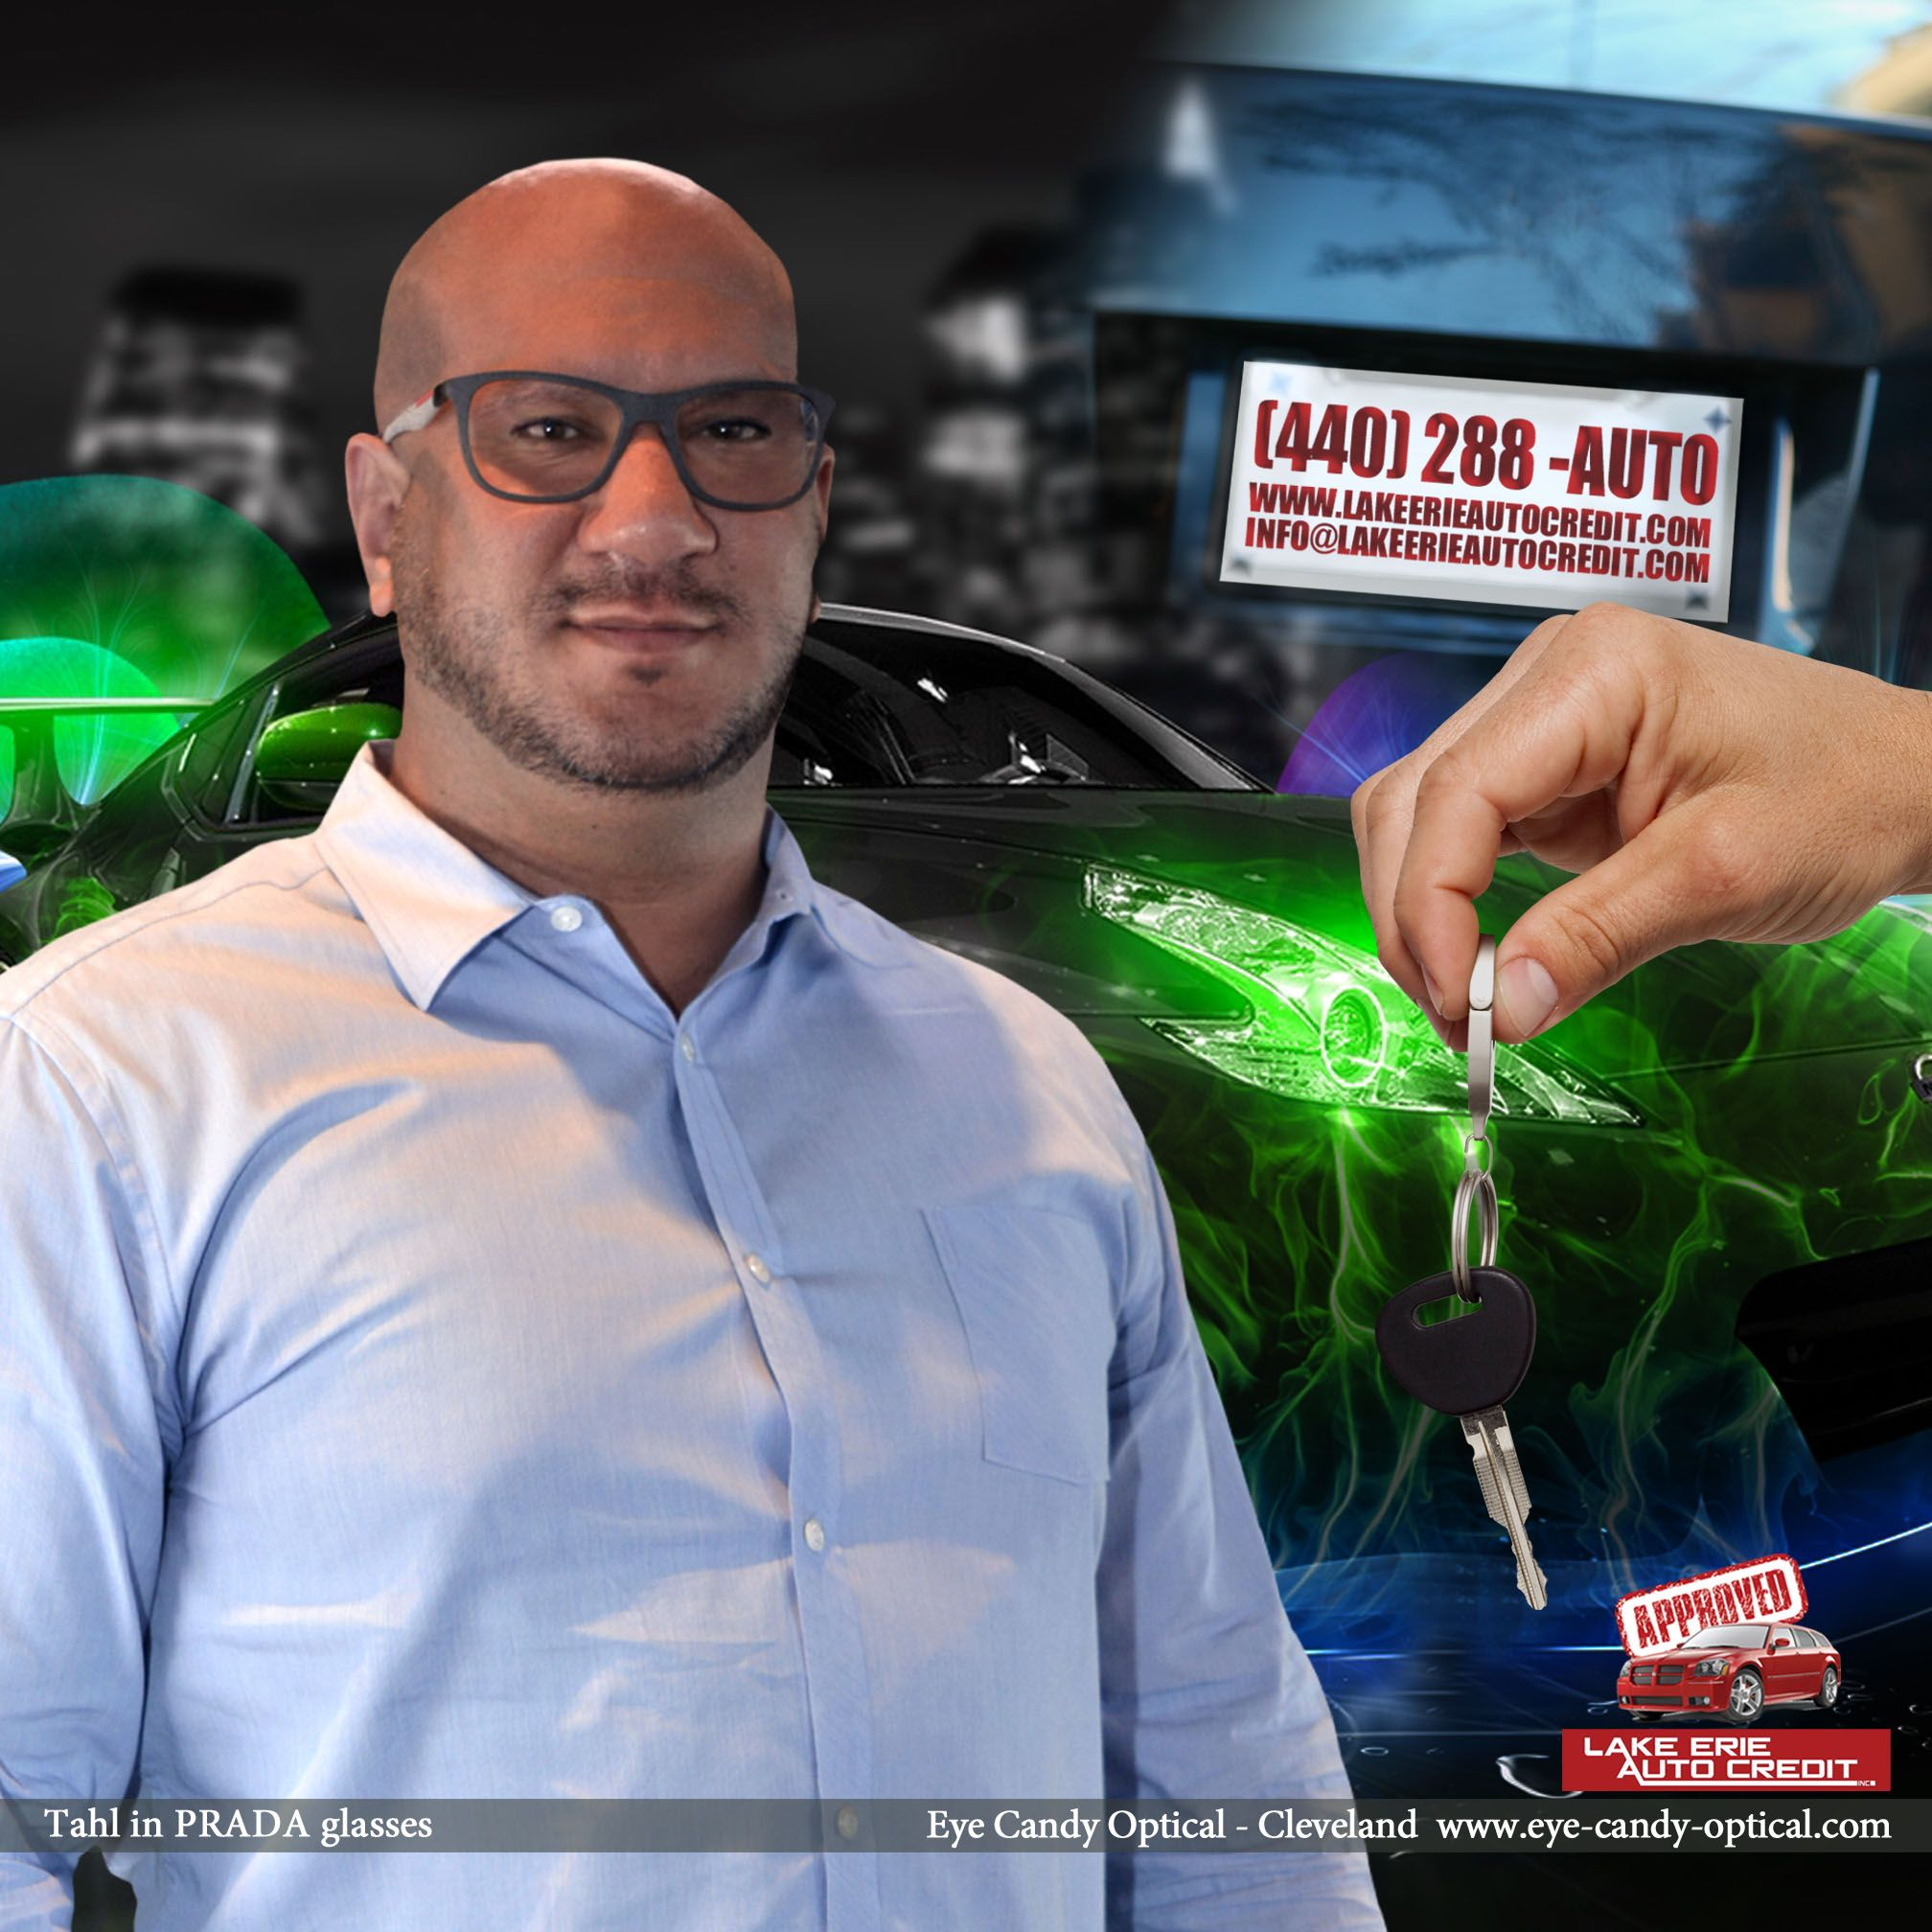 Lake Erie Auto Credit >> Tahl From Lake Erie Auto Credit Looks Great In His New Prada Glasses